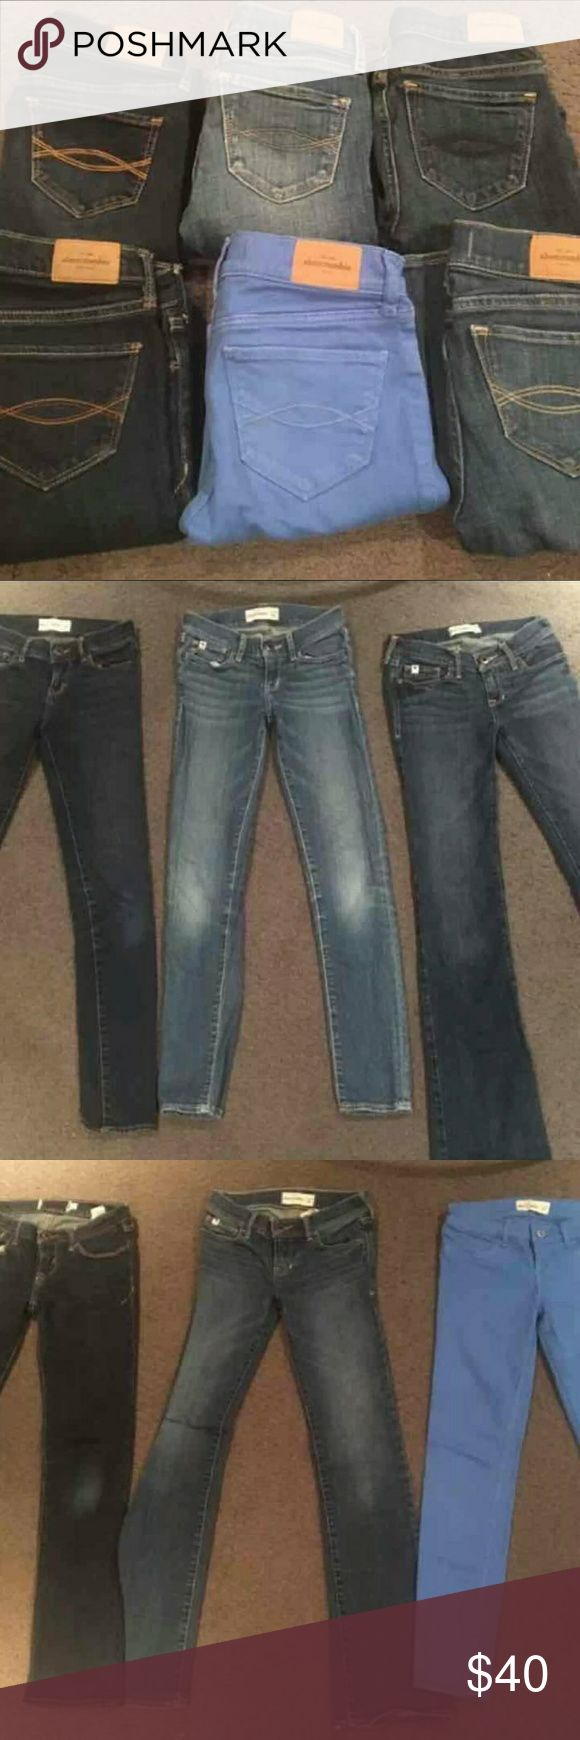 Lot of 6 pairs of abercrombie girls jeans size 12 Abercrombie girls jeans size 12 slim . Lot of 6 pairs Great deal one pair goes for atleast $22 a pair each abercrombie kids Bottoms Jeans